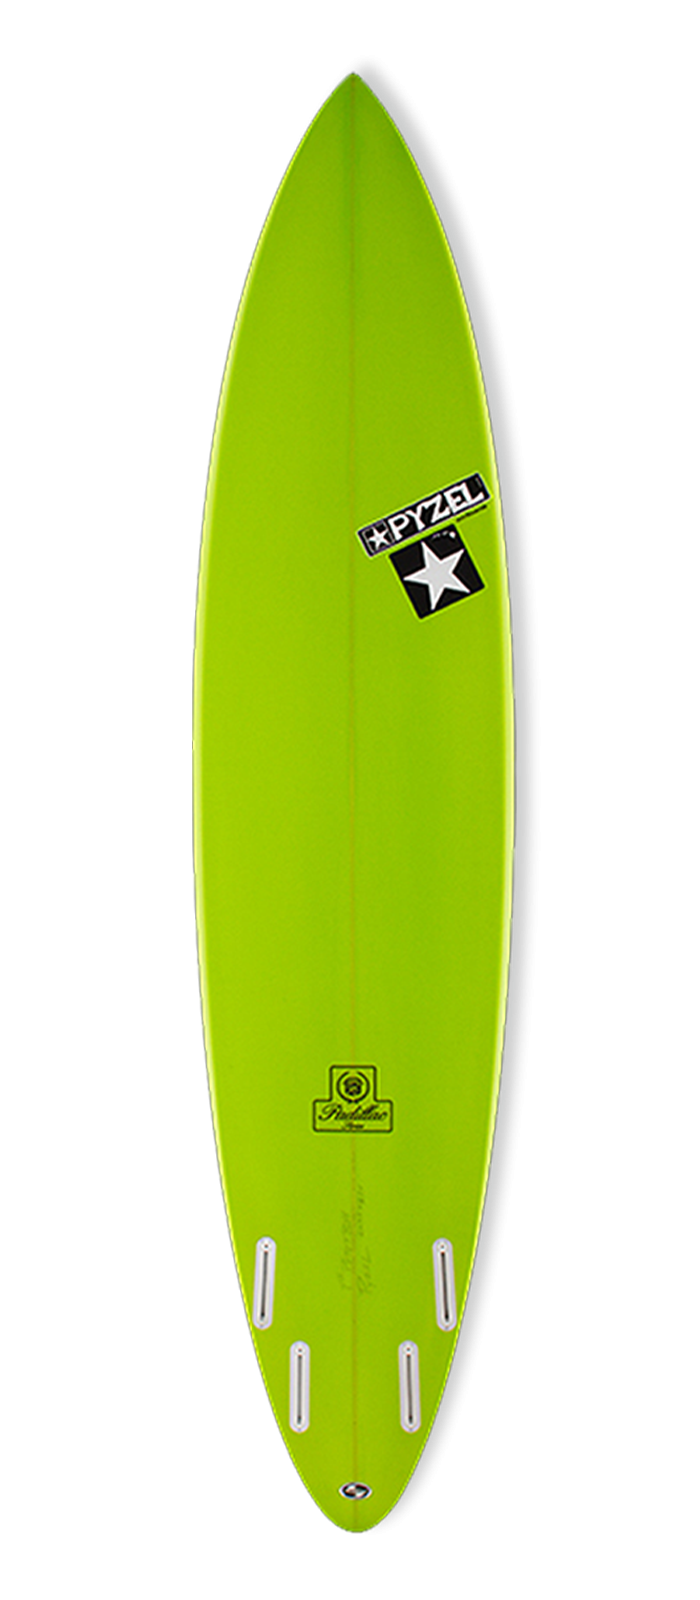 PADILLAC surfboard model bottom